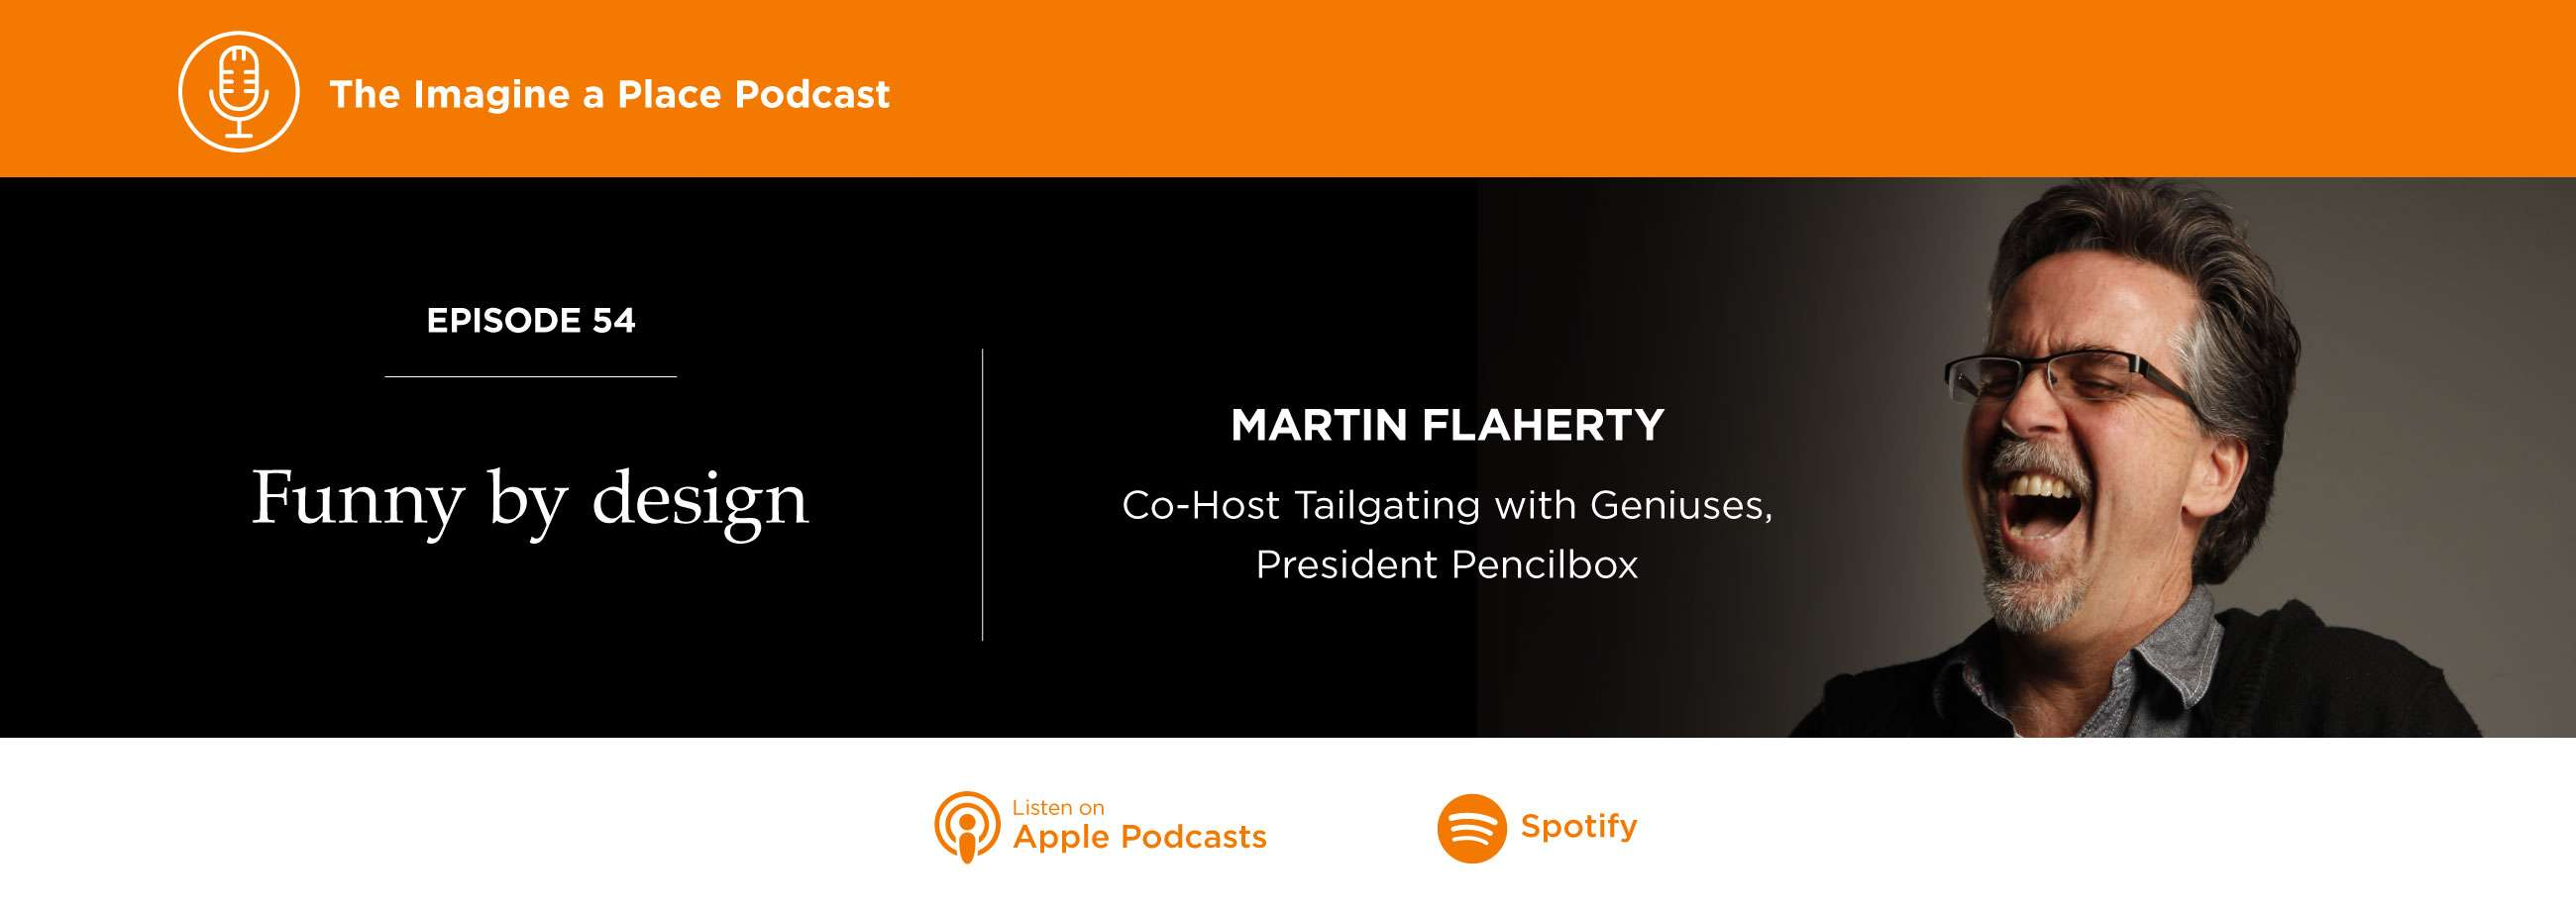 Martin Flaherty of Pencilbox on Imagine a Place podcast